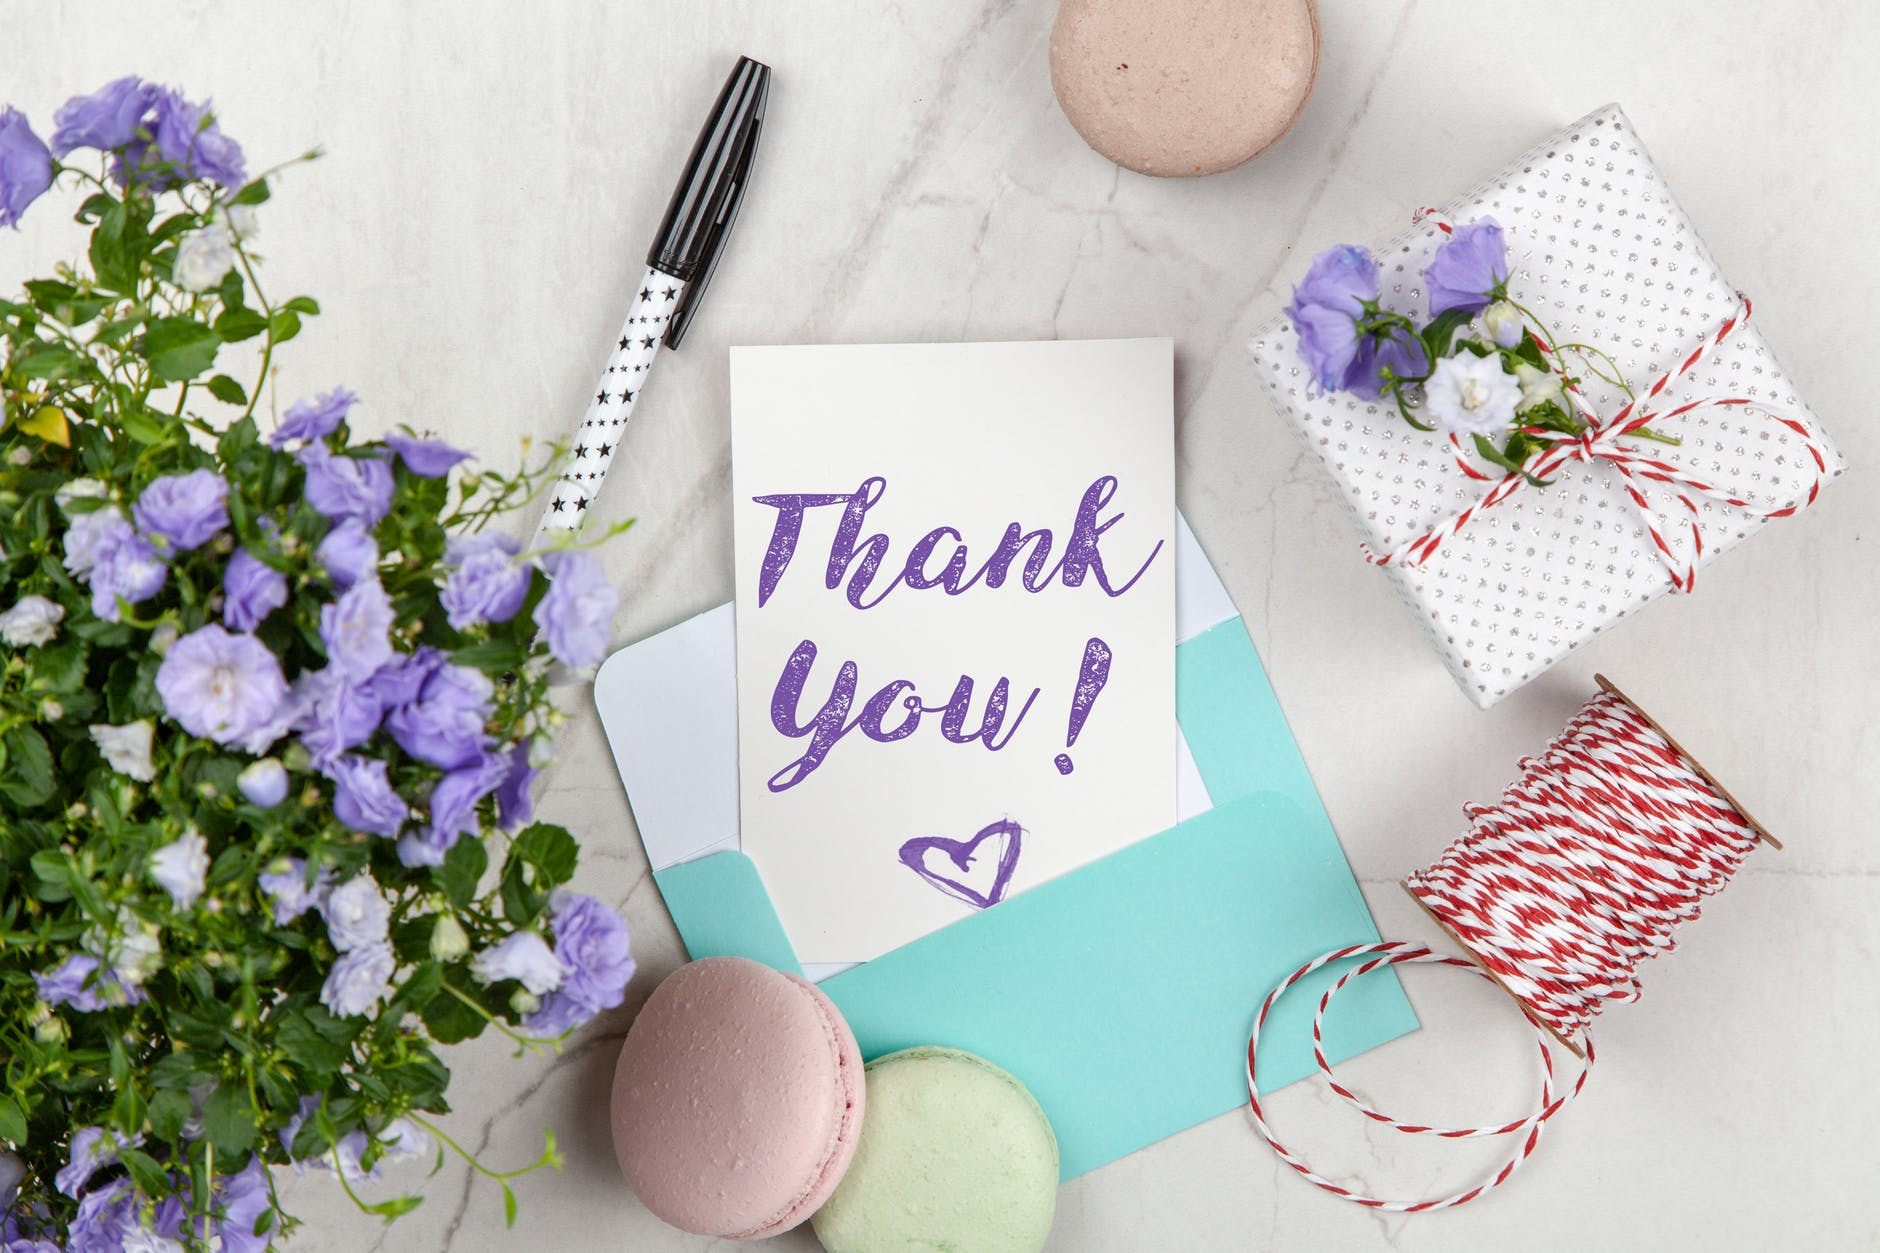 A thank you card in a blue envelope near flowers and a wrapped gift.